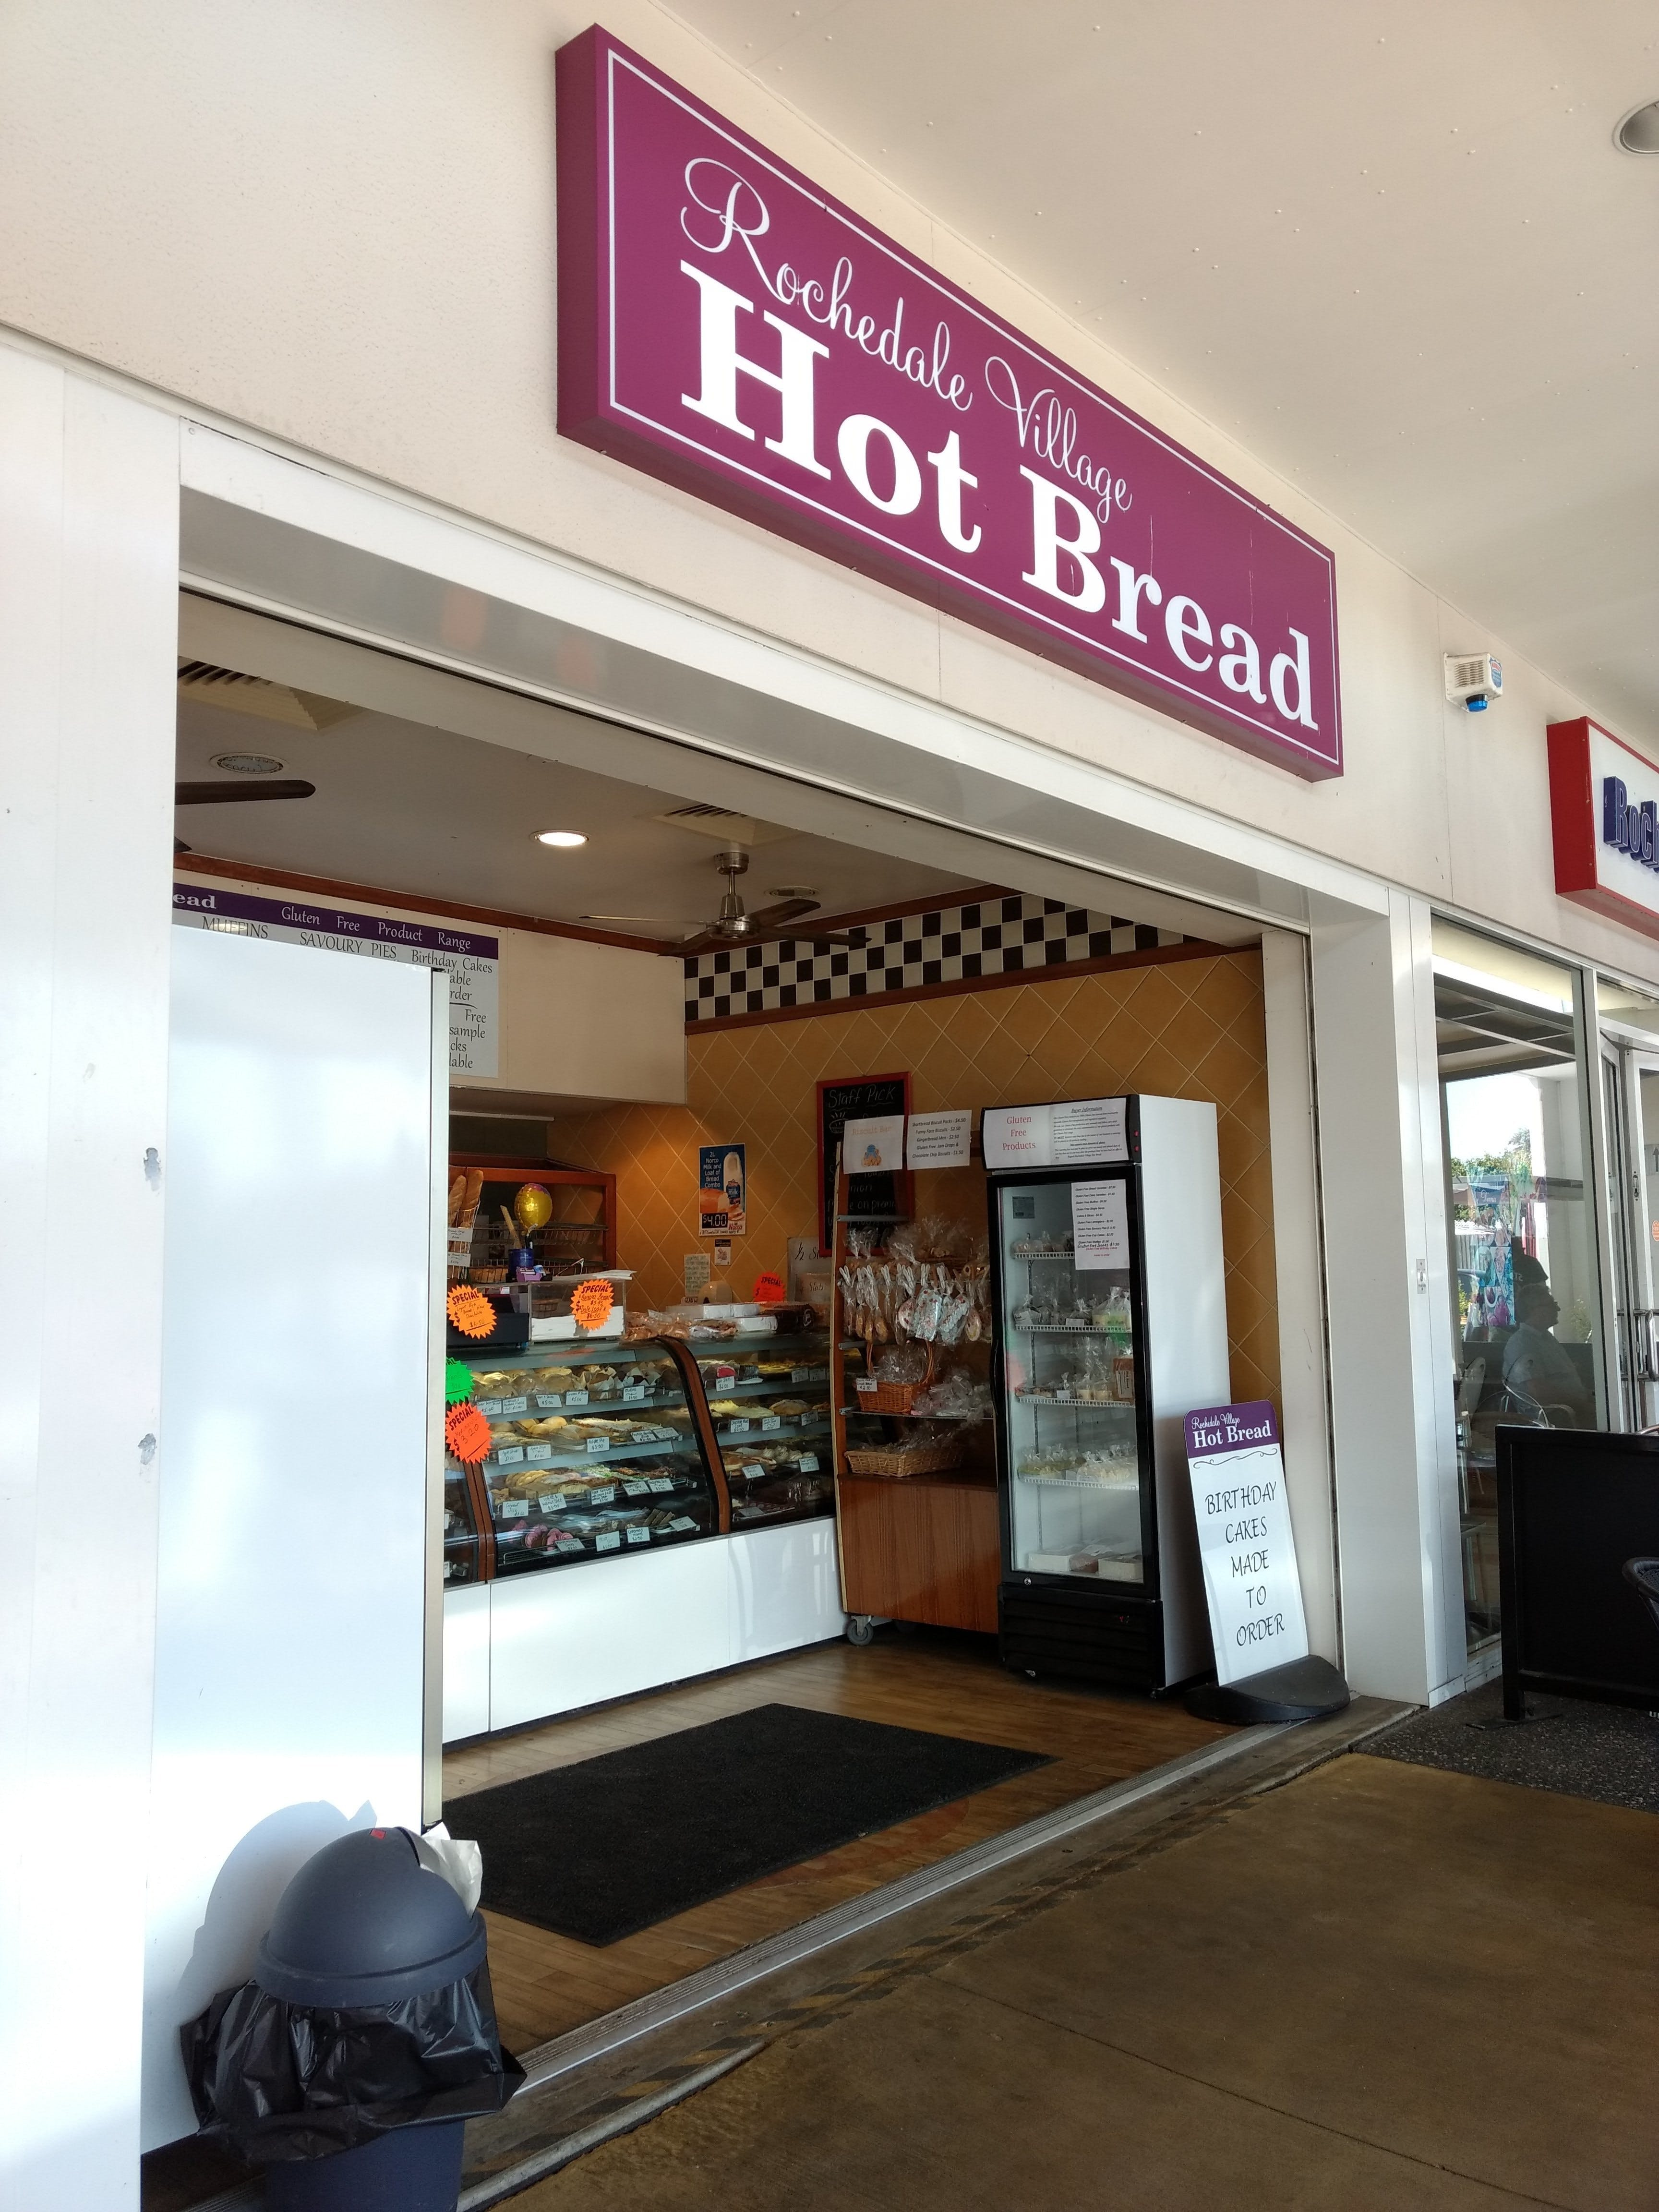 Rochedale Village Hot Bread - Casino Accommodation